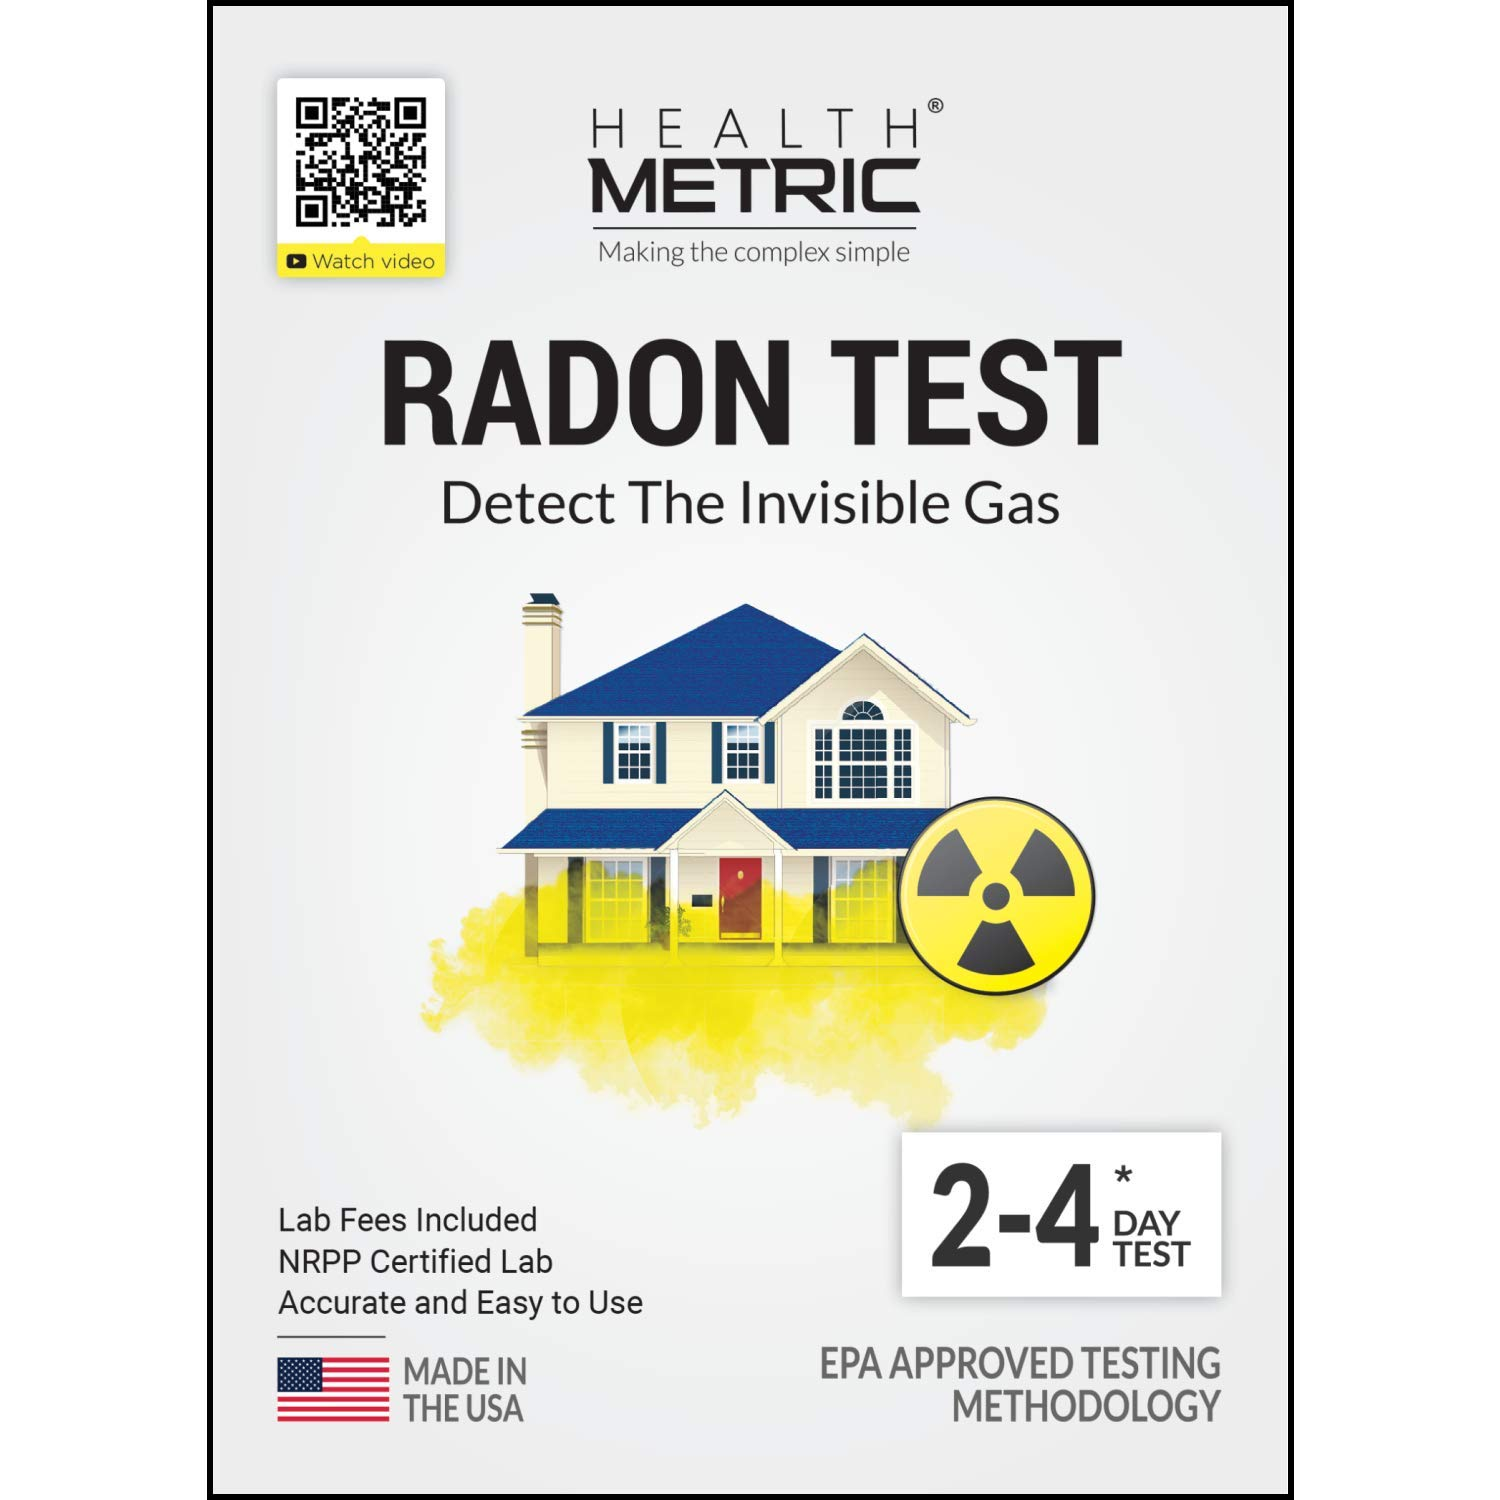 Radon Test Kit for Home - Easy to Use Charcoal Radon Gas Detector for Peace of Mind | 48-96h Short Term EPA Approved Radon Tester | Includes Lab Fees ...